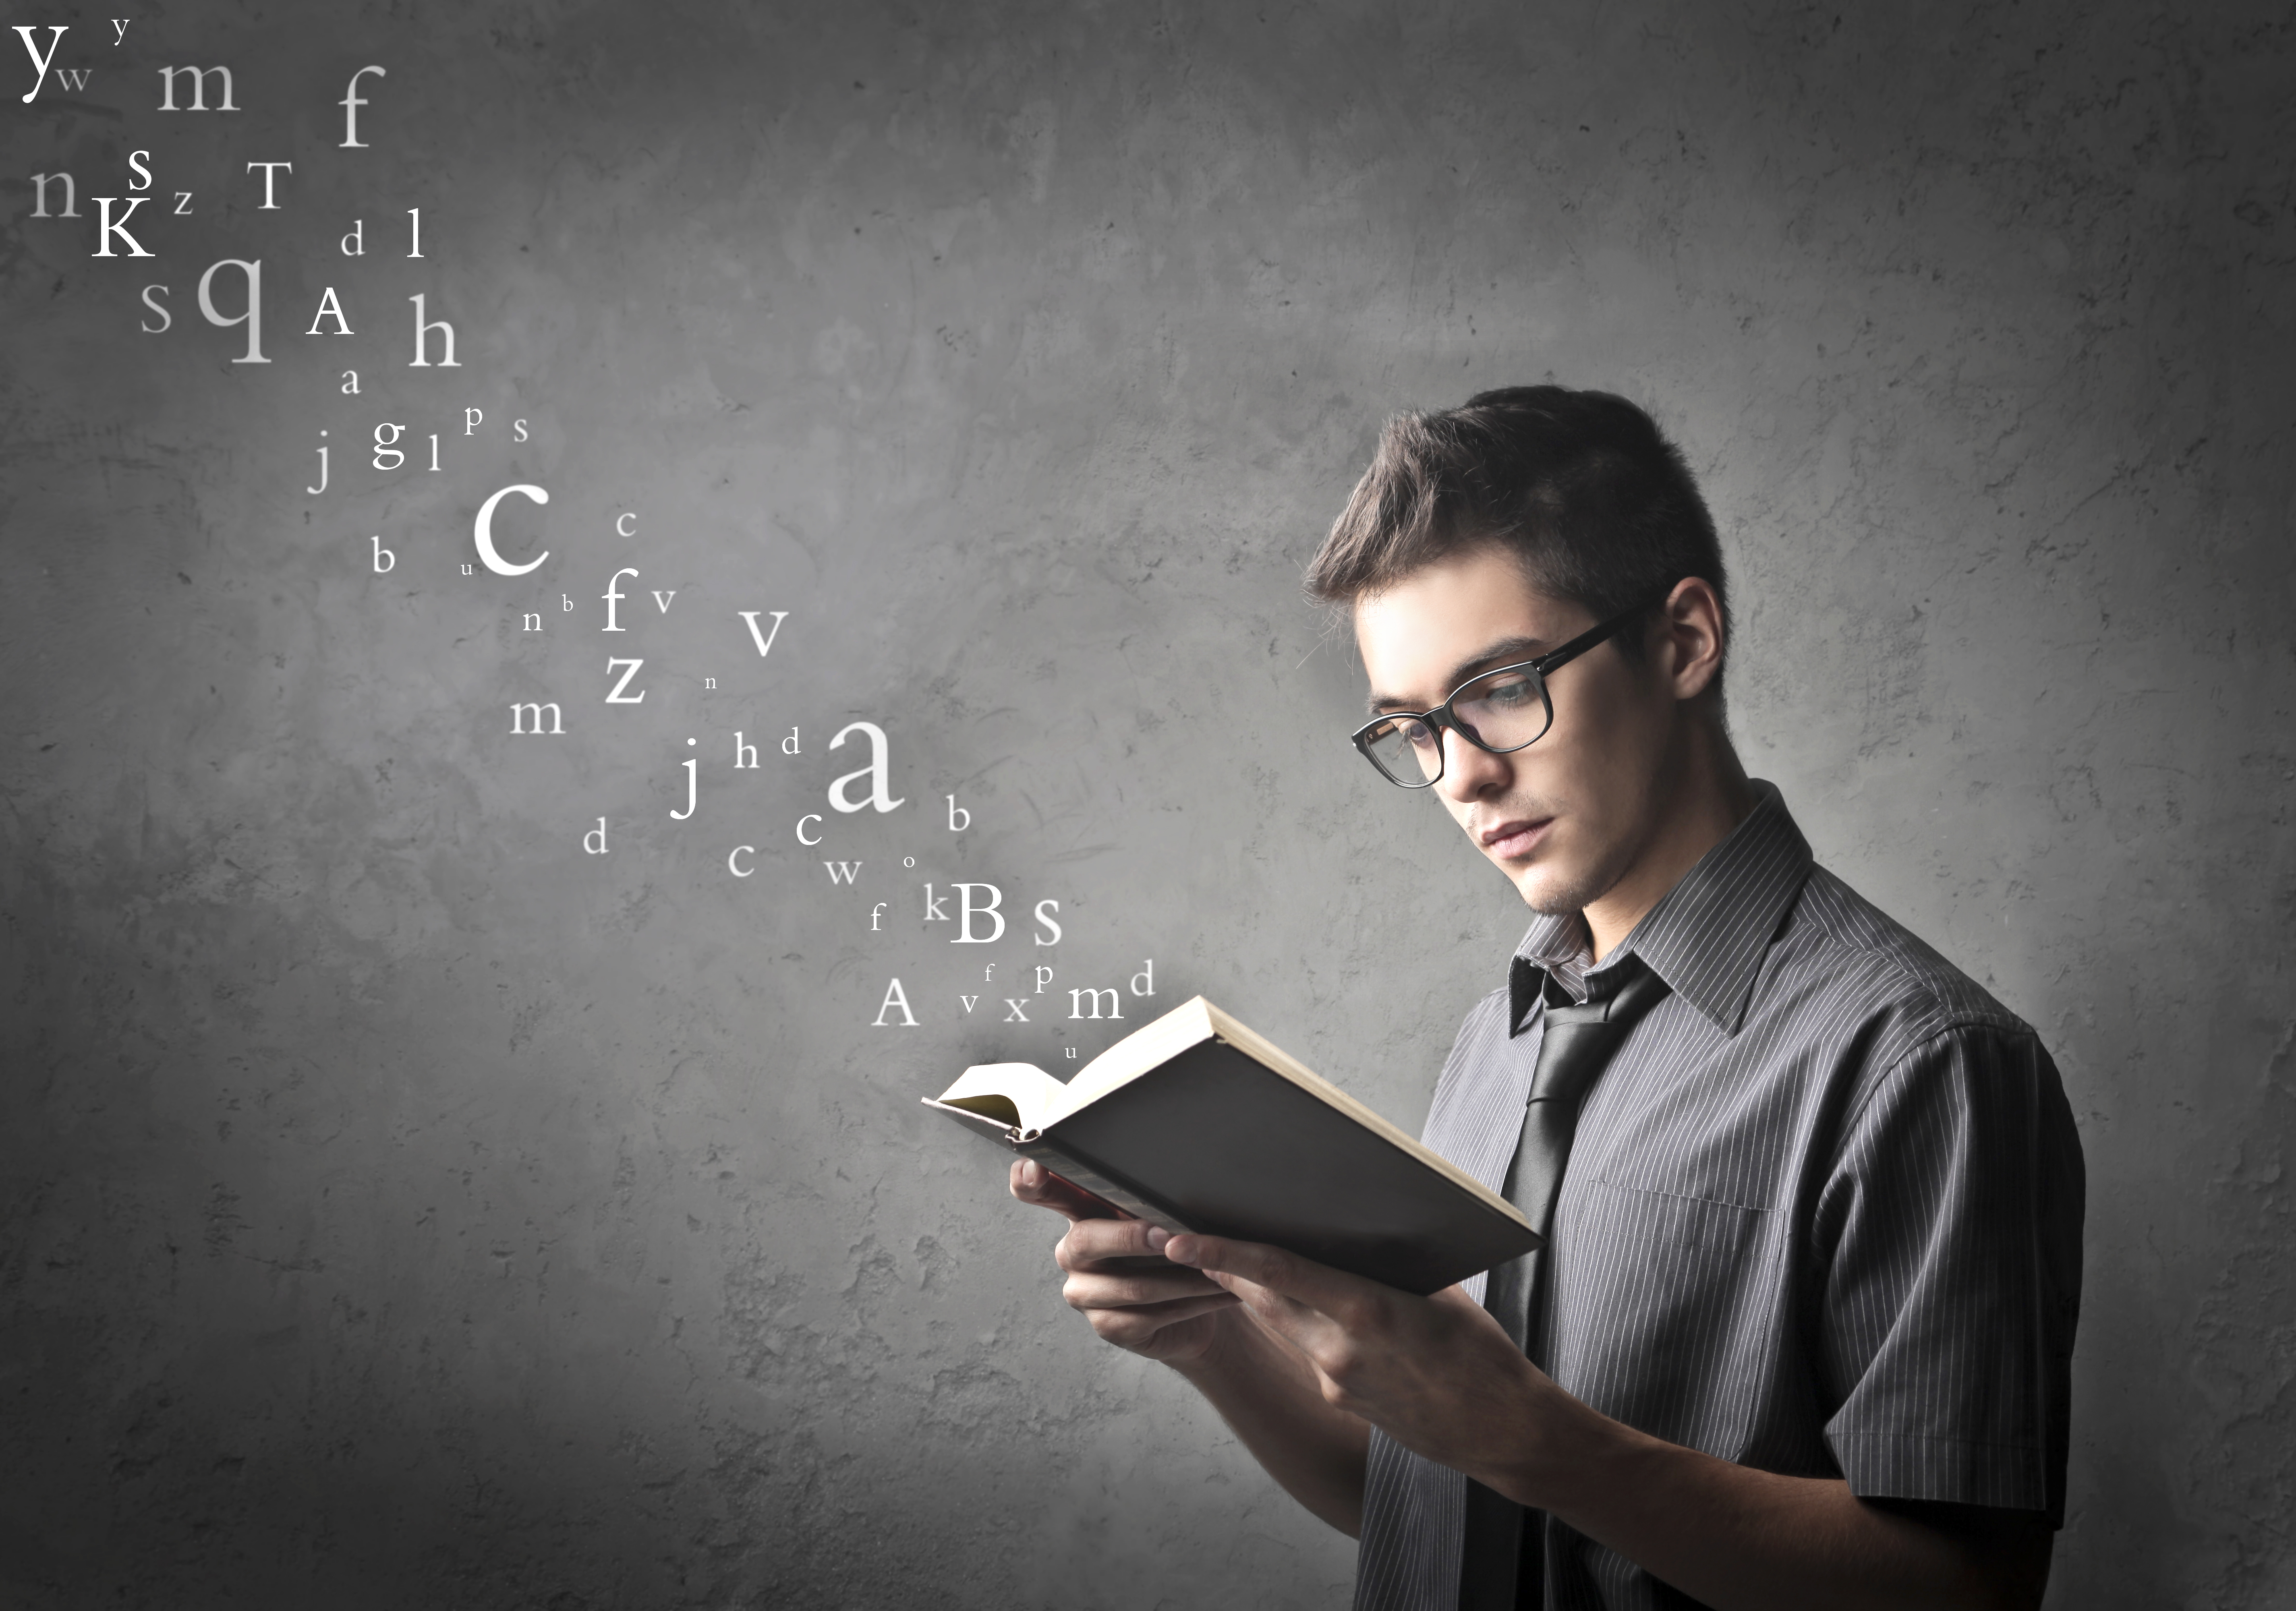 A standing teenage boy reading a book in front of a grey background with a stream of letters floating up to the sky